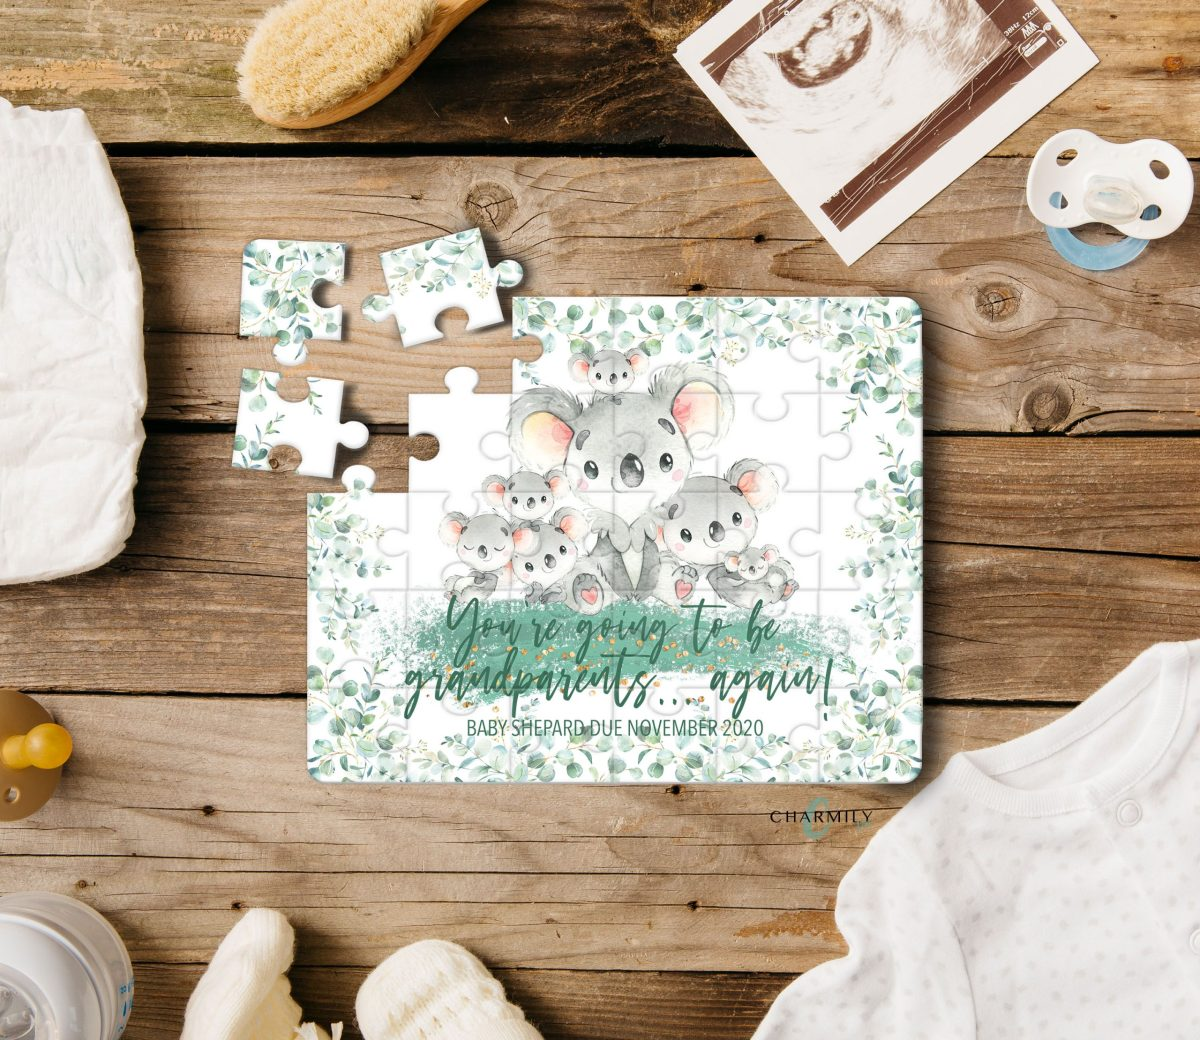 Koala-fam-8-grandparents-again-Baby-Announcement-Puzzle-Mockup-Recovered